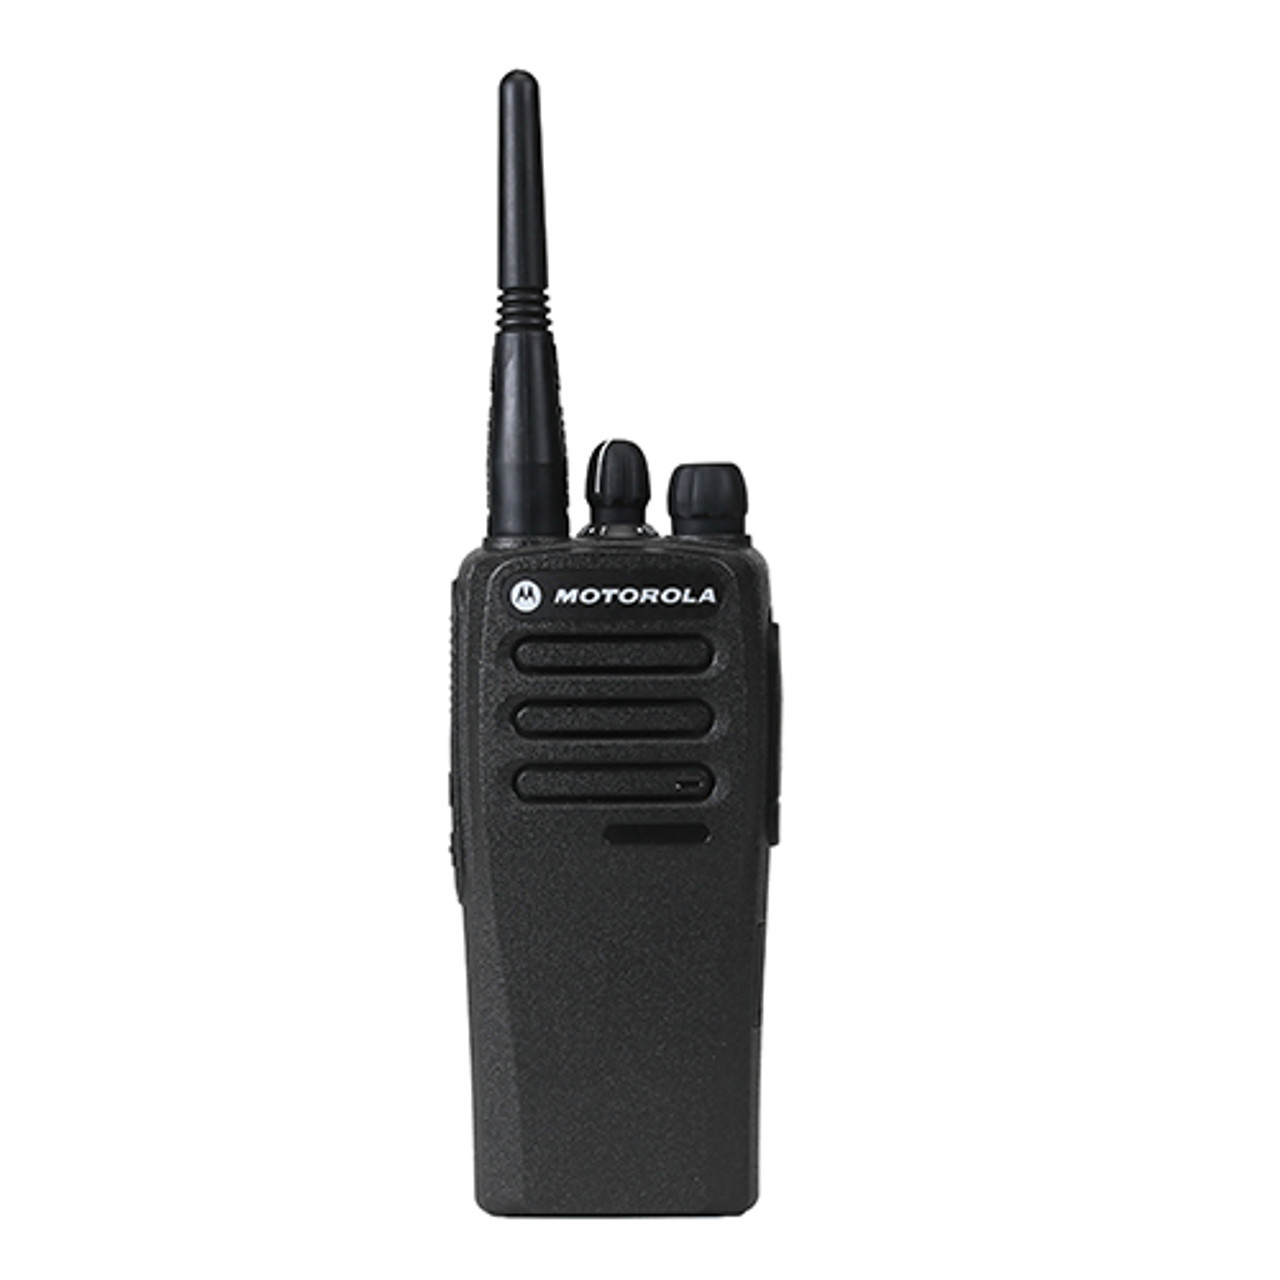 WPLN4138 Speedy Battery Charger For Motorola CP150 CP160 CP200 CP200d 2Way Radio